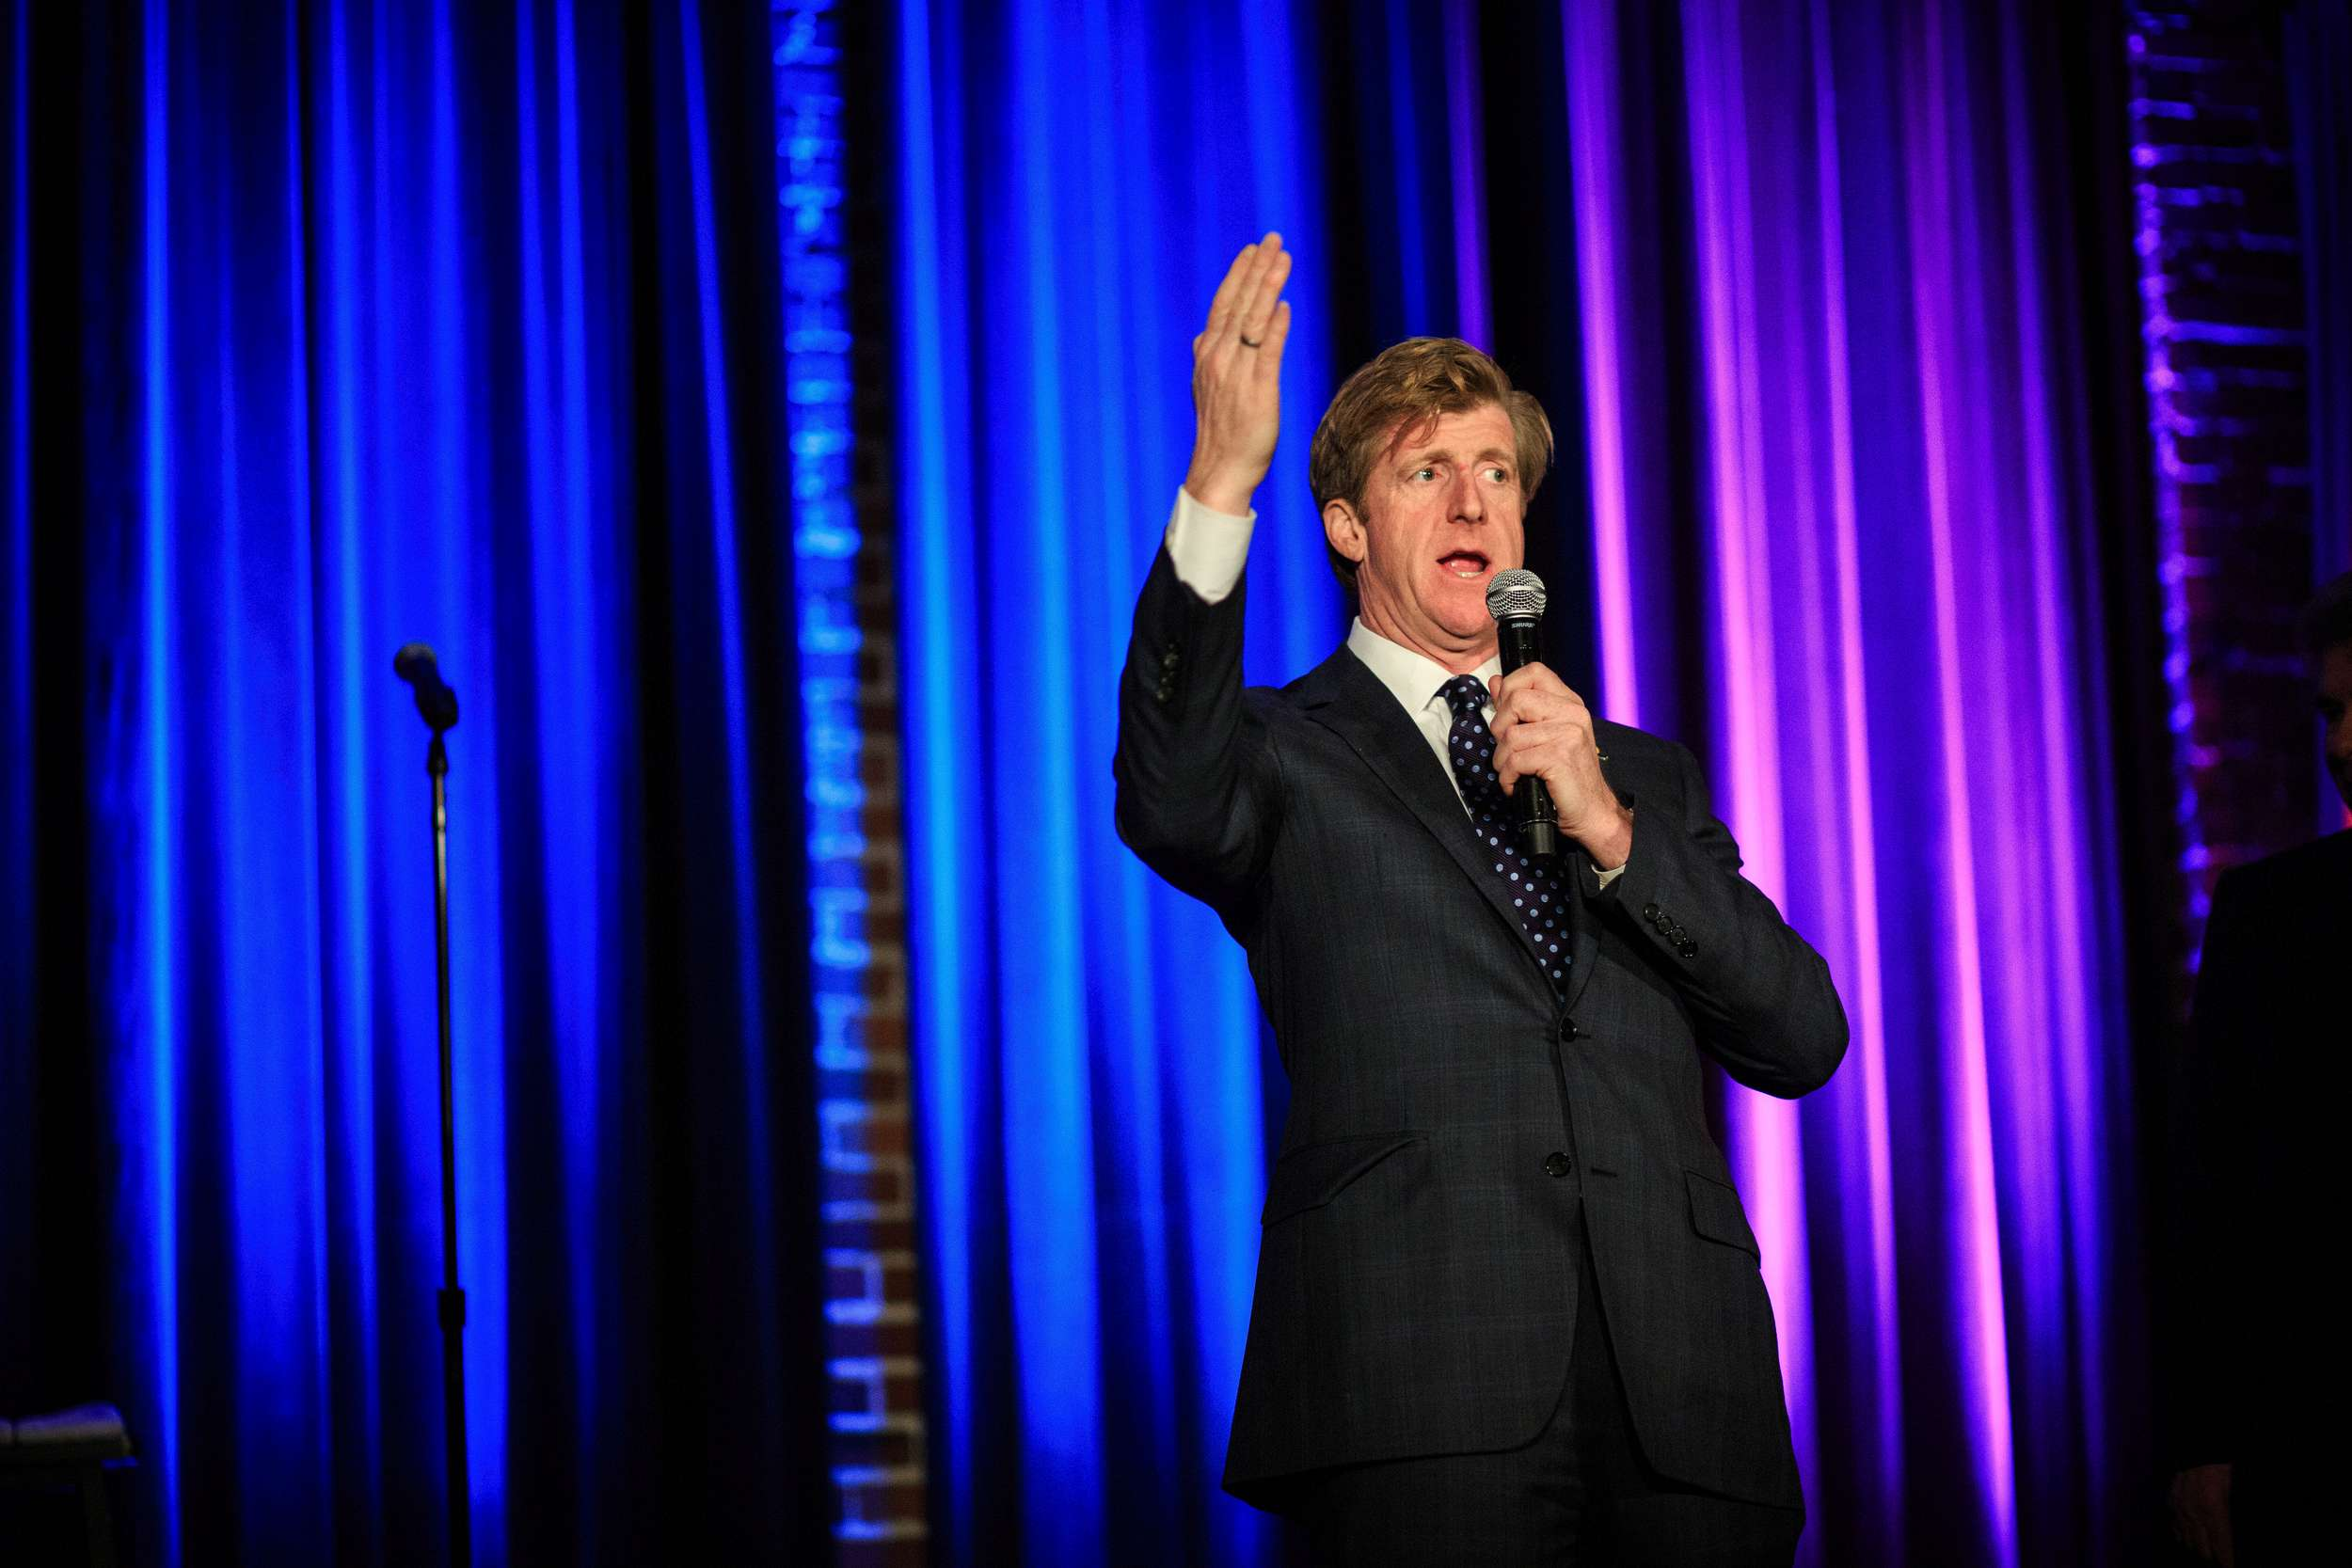 Patrick Kennedy speaking at a fundraiser in Seattle